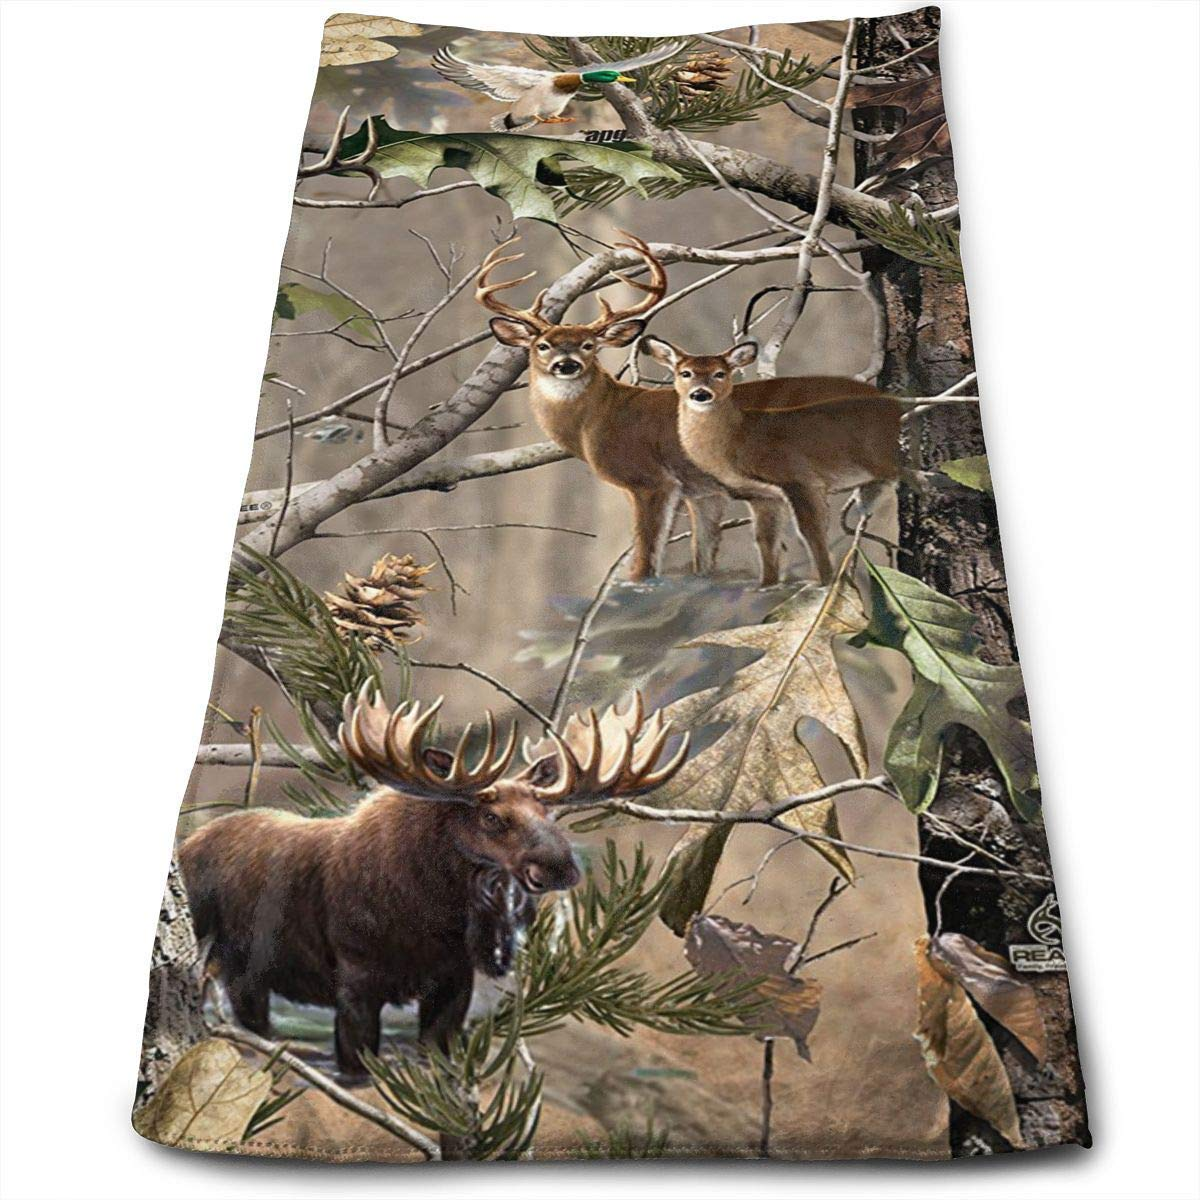 OQUYCZ Moose Deer and Bear in Forest Multi-Purpose Microfiber Towel Ultra Compact Super Absorbent and Fast Drying Sports Towel Travel Towel Beach Towel Perfect for Camping, Gym, Swimming.